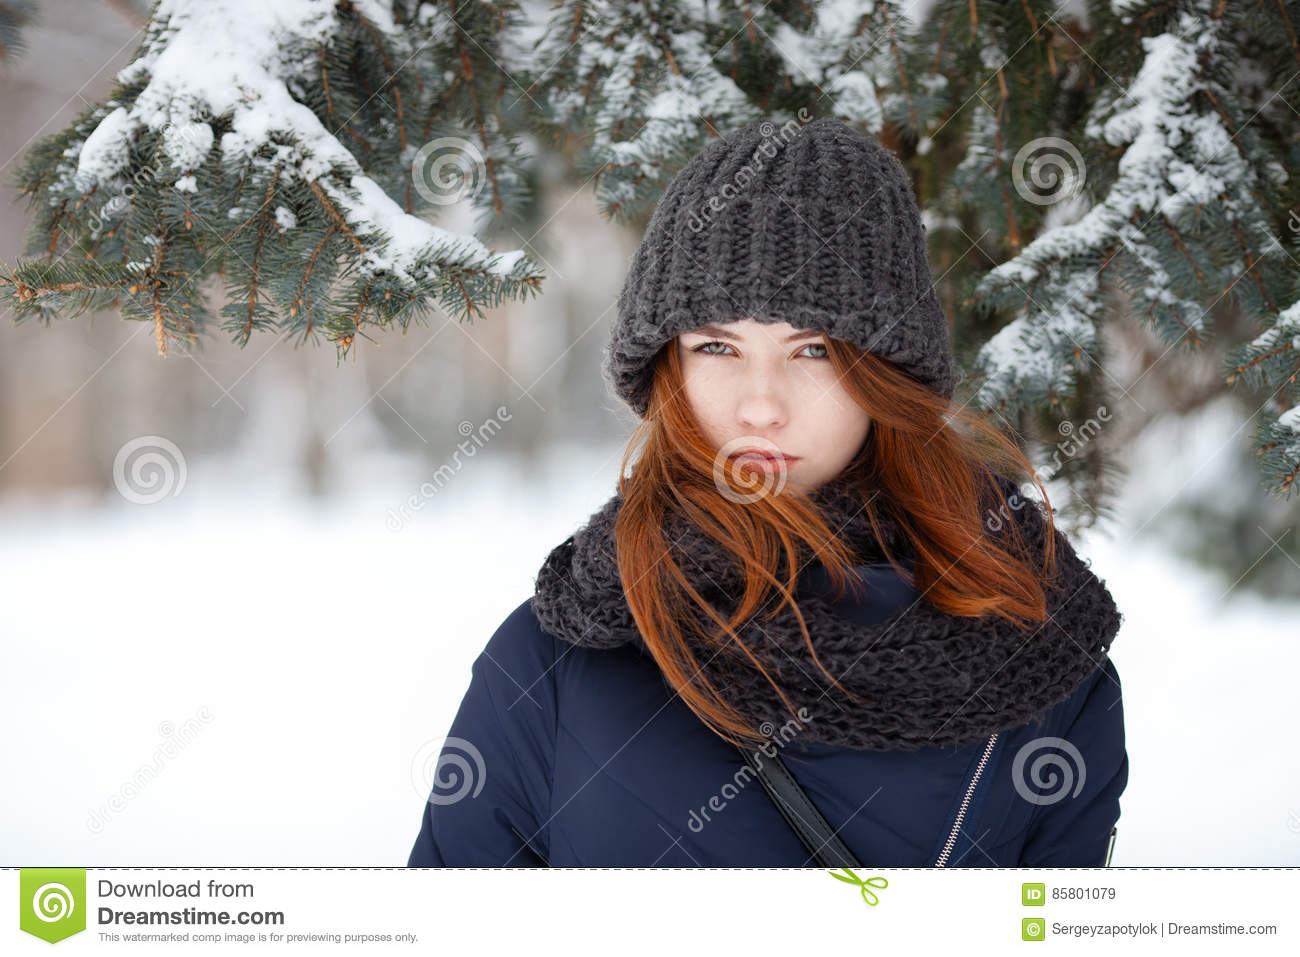 Closeup beautiful winter portrait of young adorable redhead woman in cute knitted hat winter snowy park